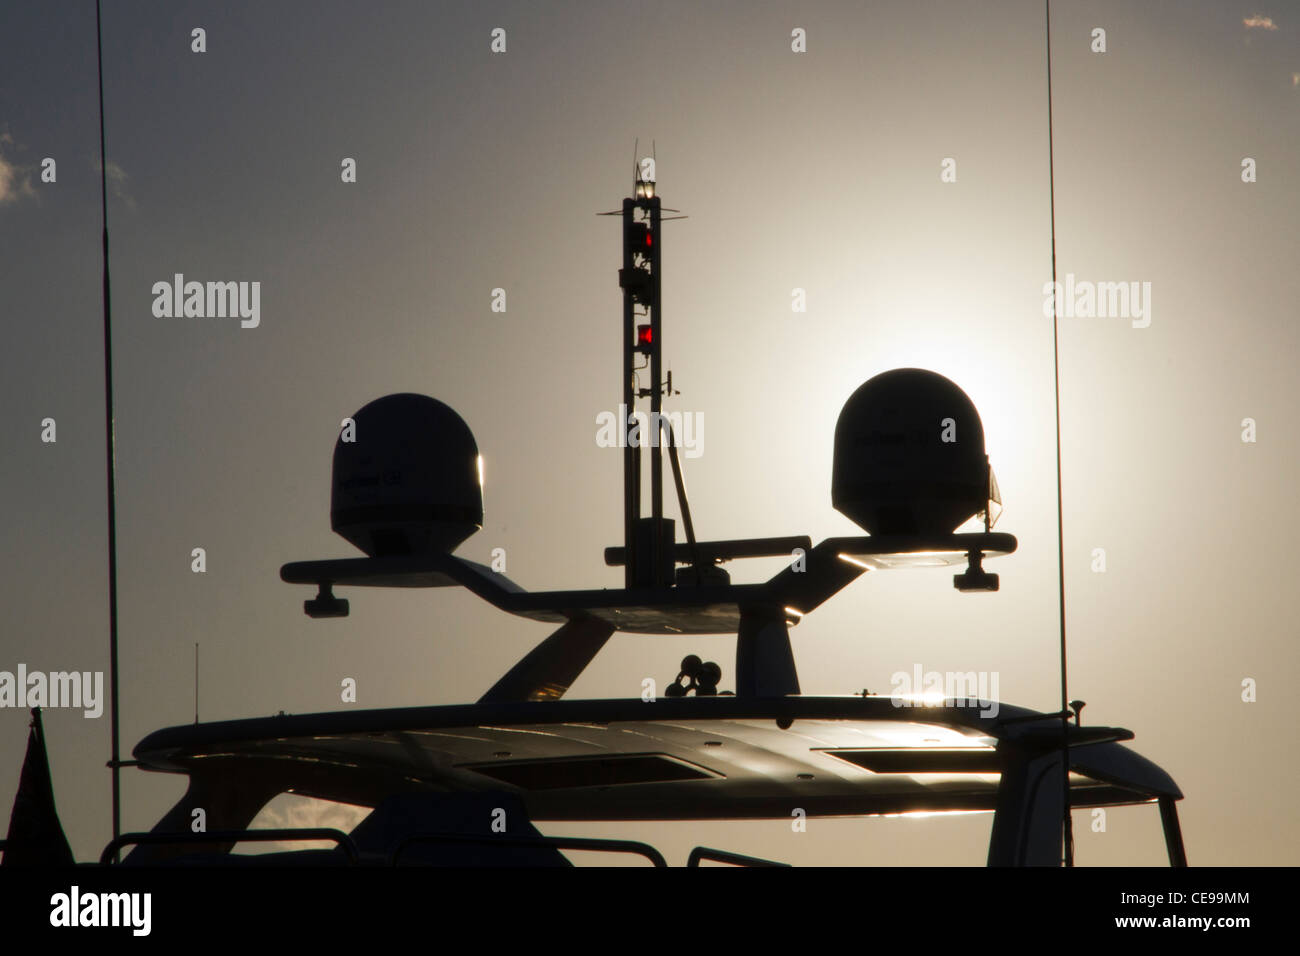 radar and safety equipment equipments for navigation mounted aboard on luxury yacht motorboat - Stock Image